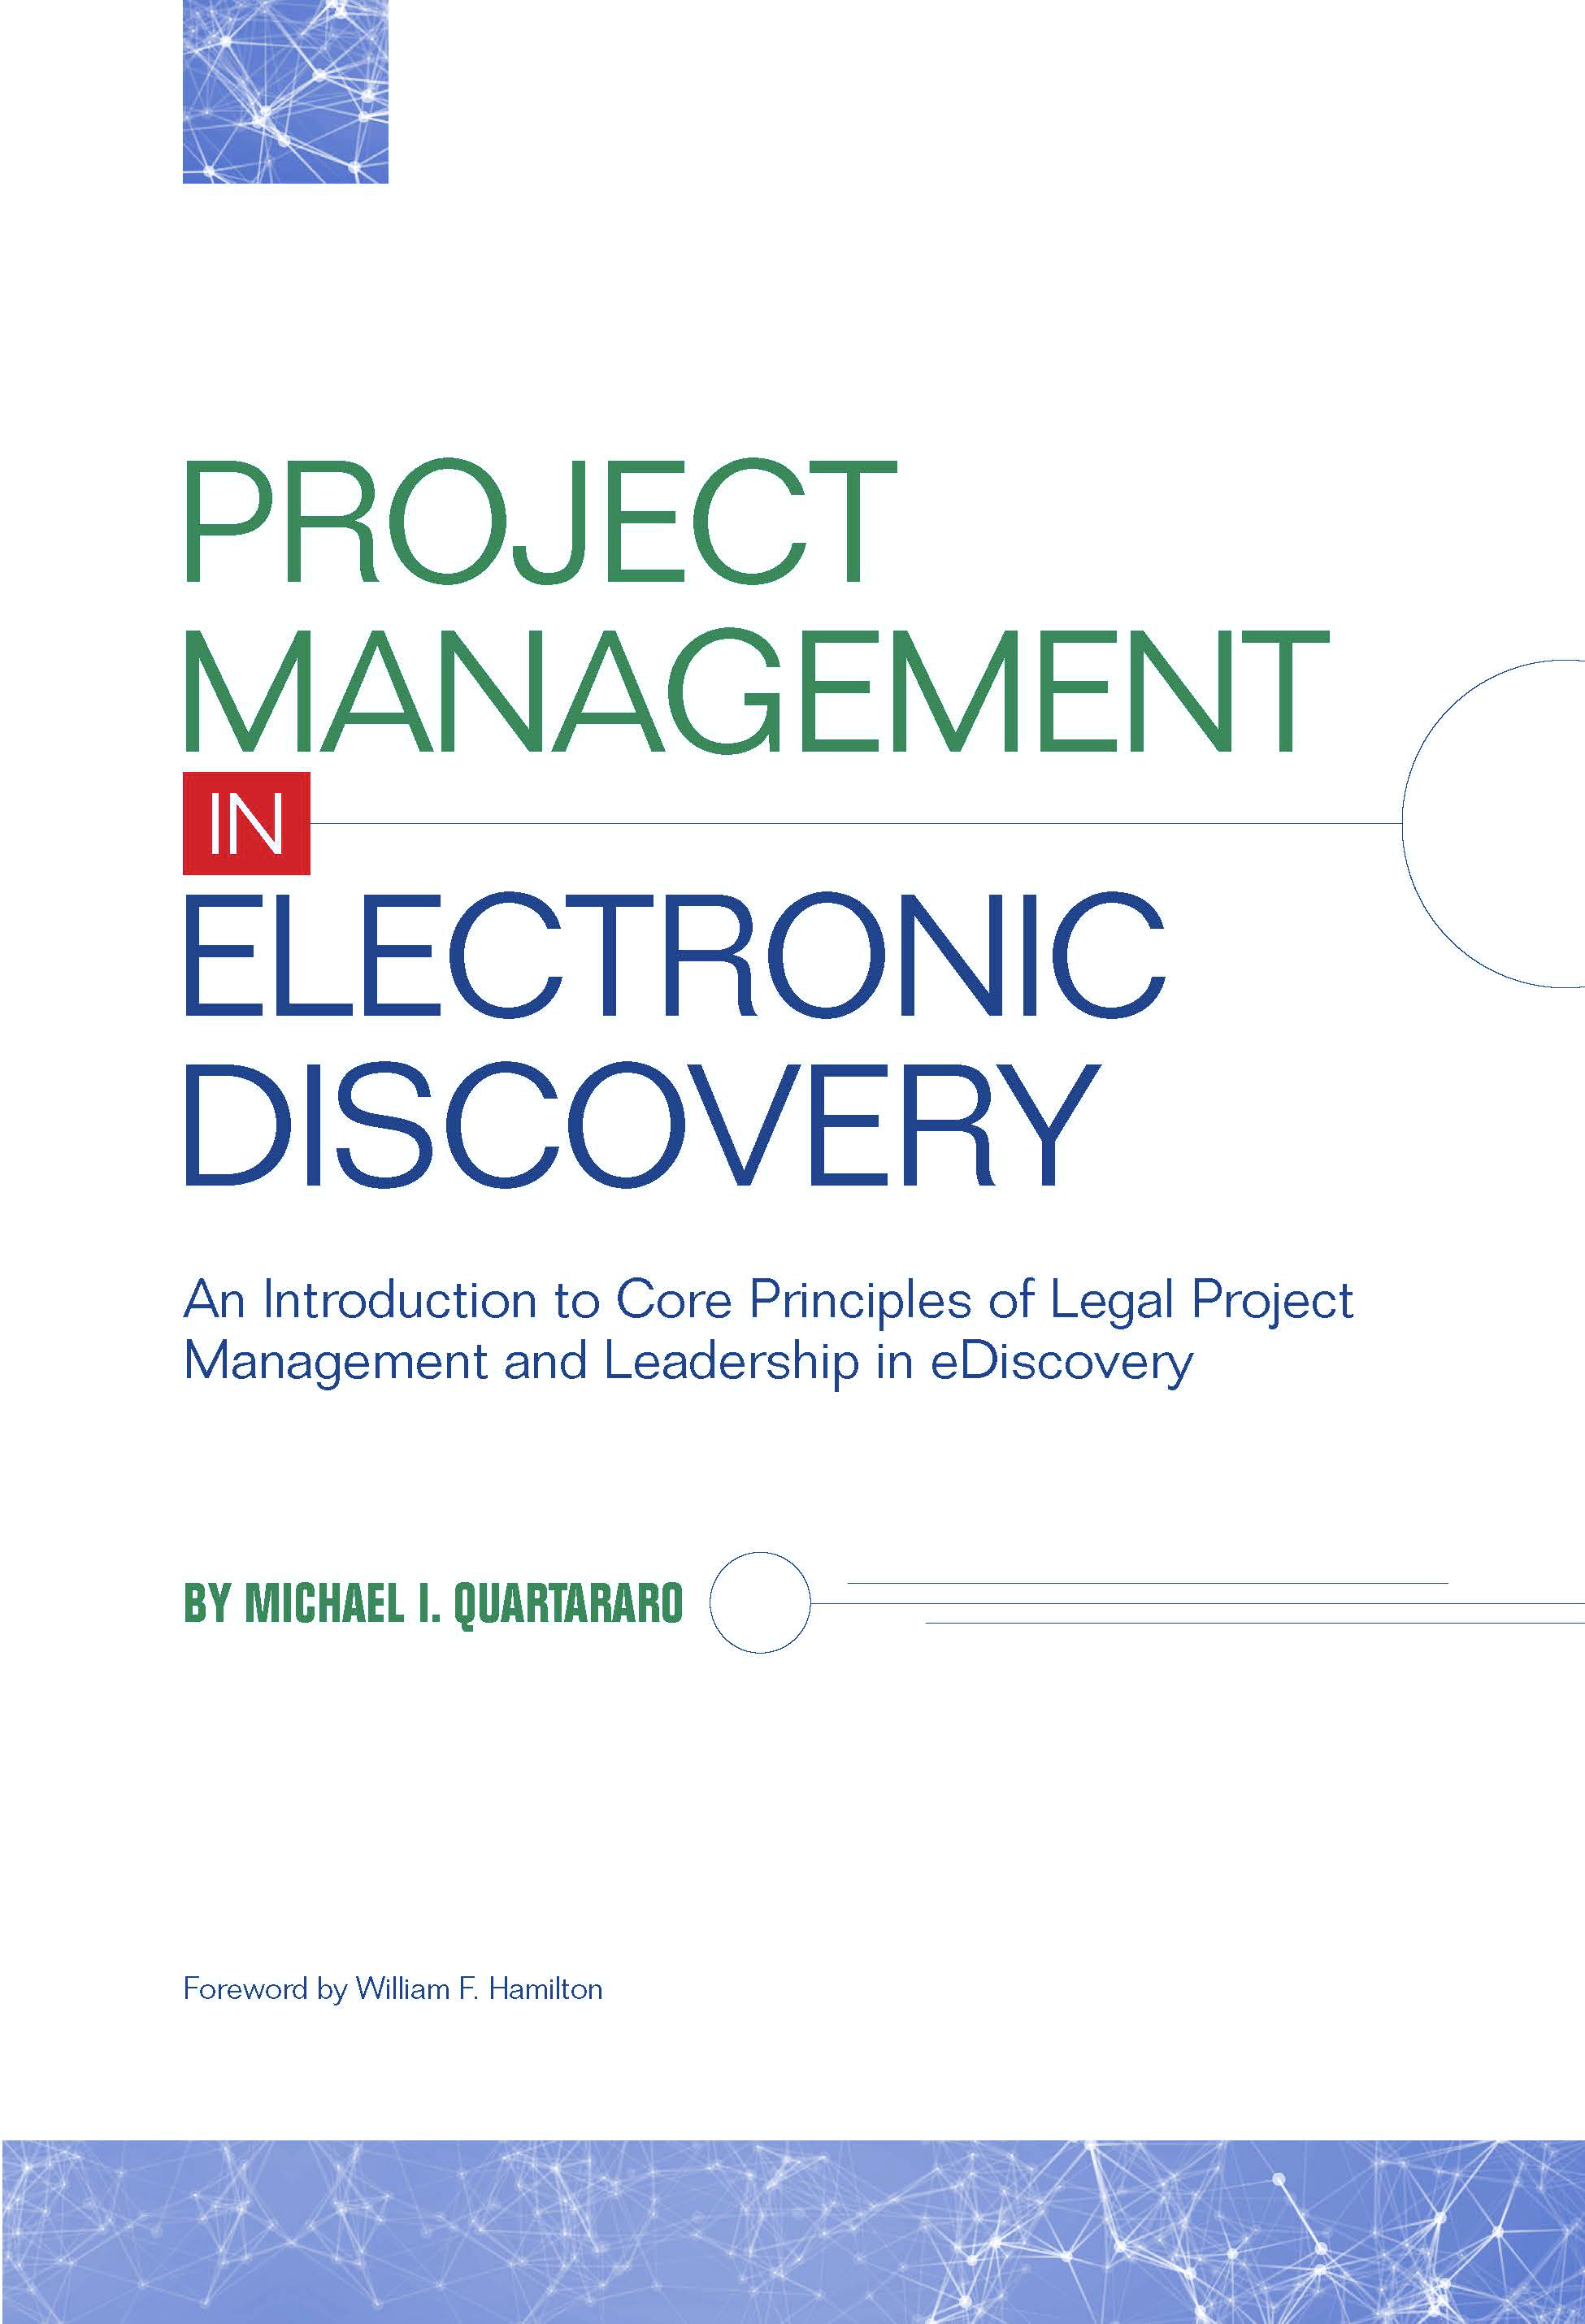 ediscoverypm com project management in electronic discovery